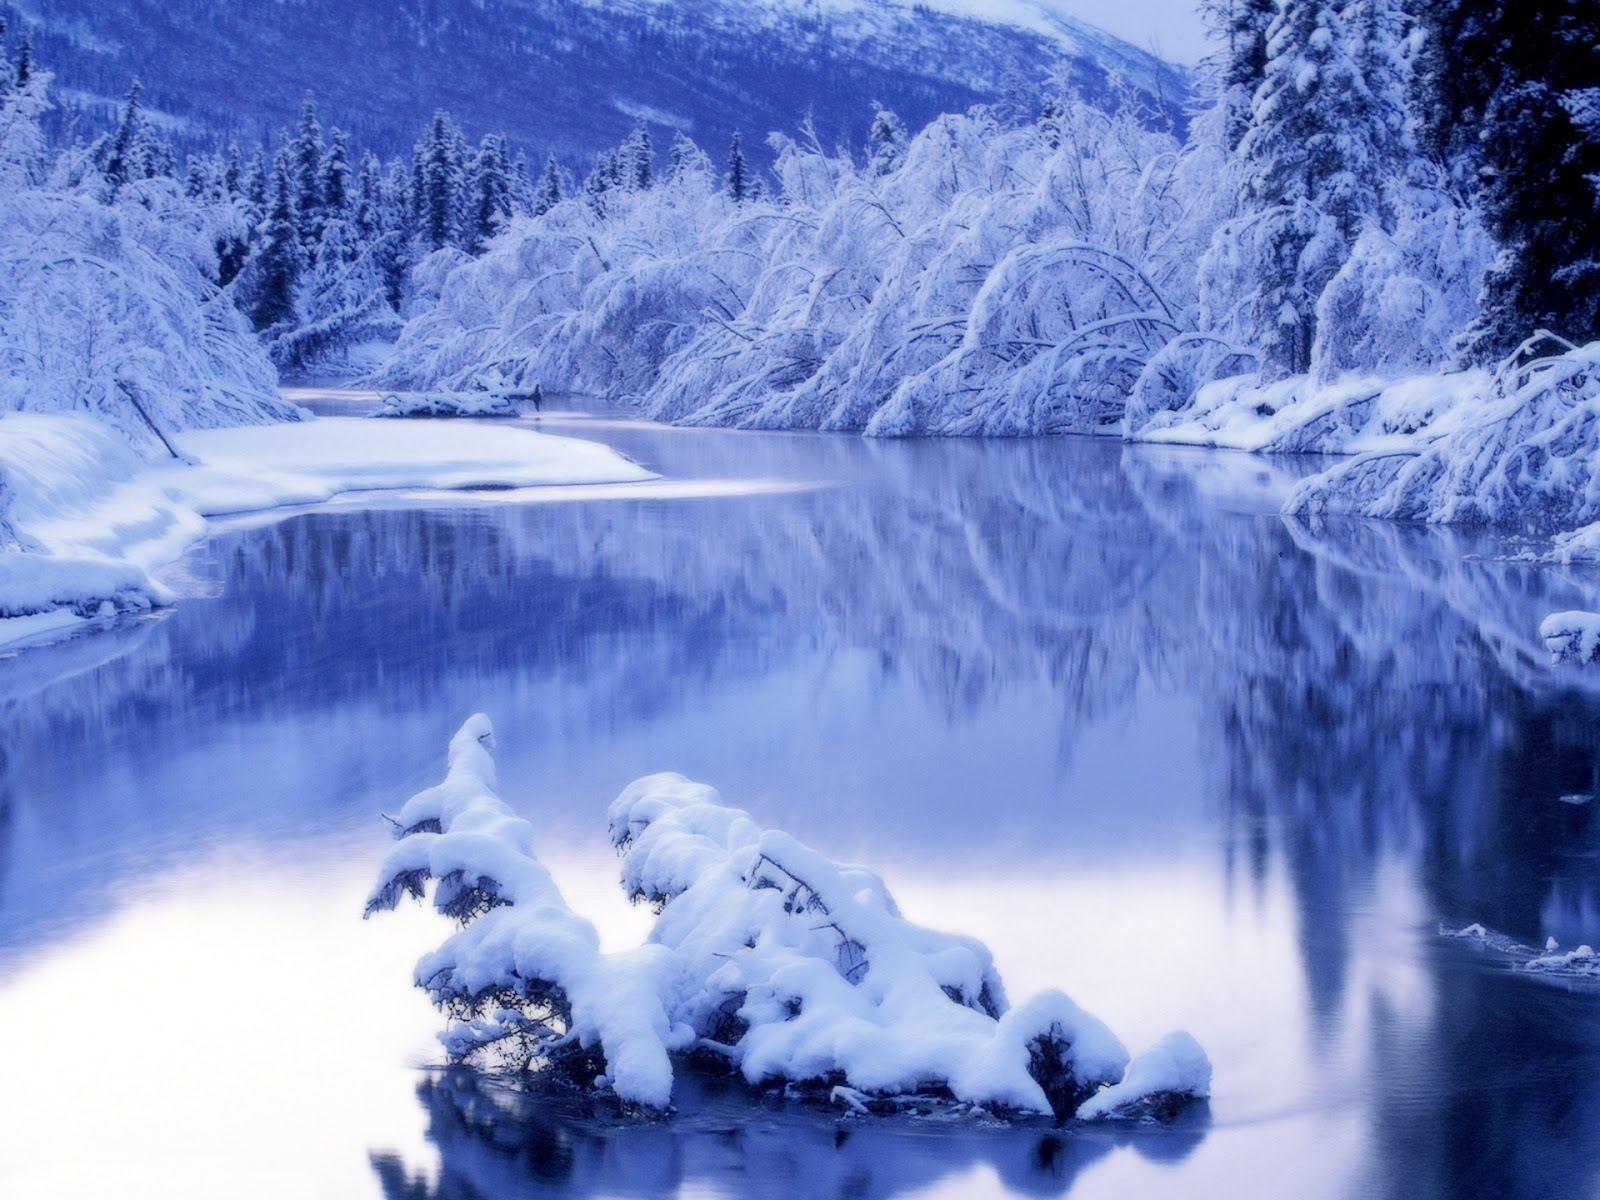 http://4.bp.blogspot.com/-PrCv_Wwk-60/Tu9Dnin3e8I/AAAAAAAAAQg/7BY5ZqCzVpE/s1600/winter-nature-landscape-wallpaper_2560x1920_87776.jpg